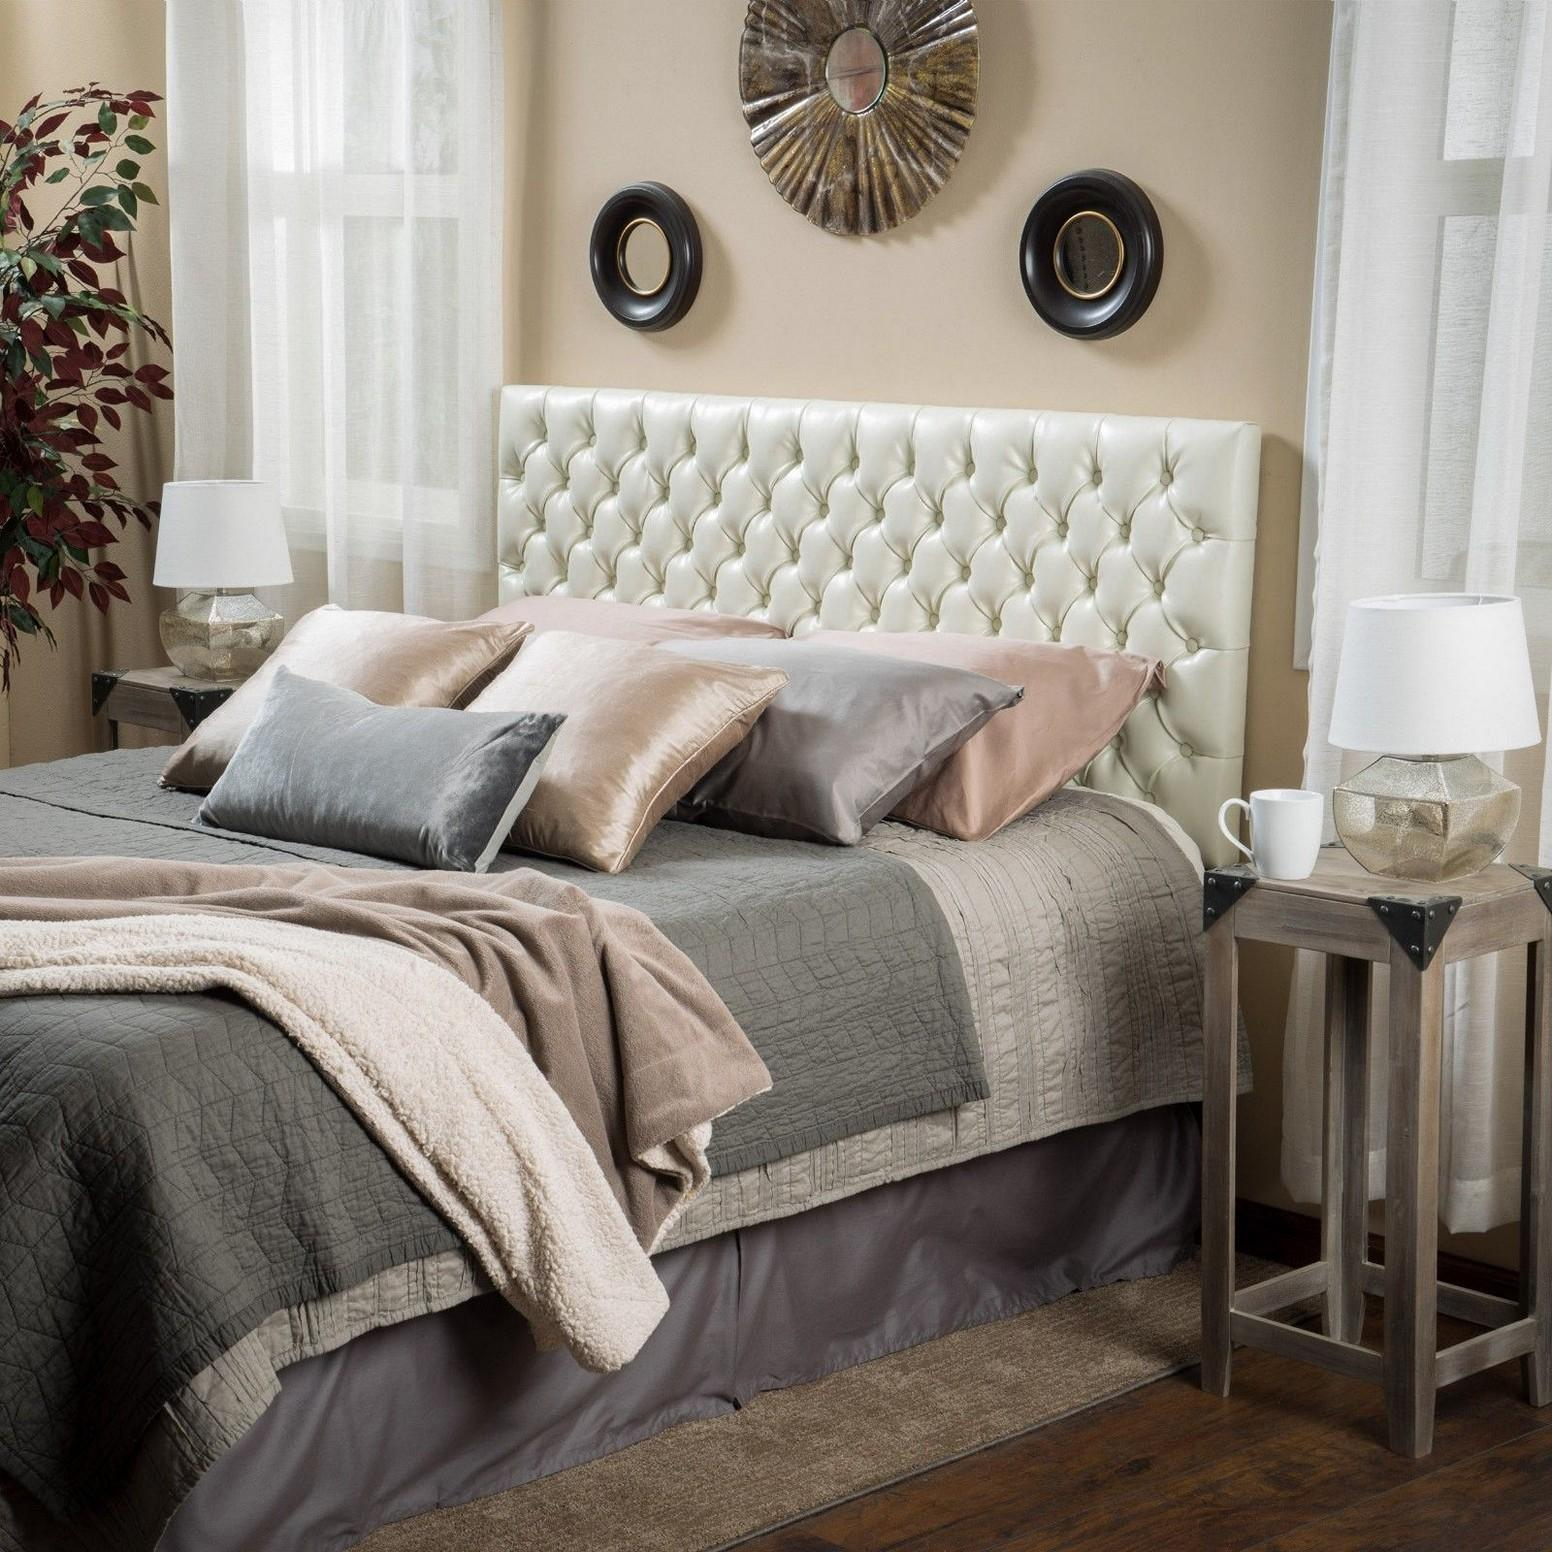 Diy Tufted Headboard Your Bed Makeover